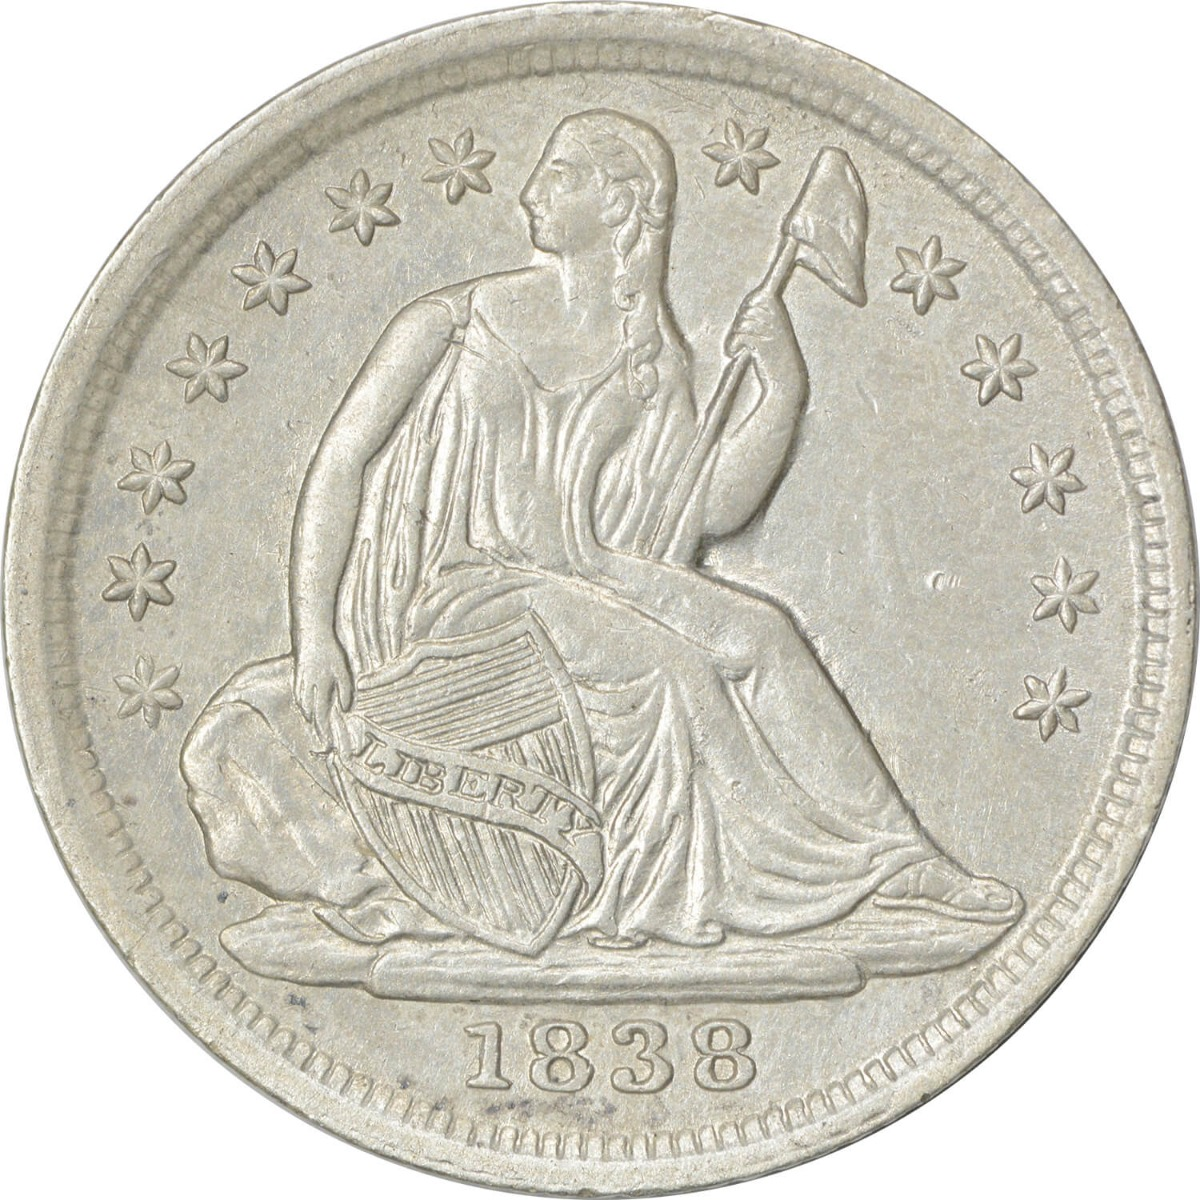 1838 Liberty Seated Silver Half Dime, No Drapery, Large Stars, AU58, Uncertified